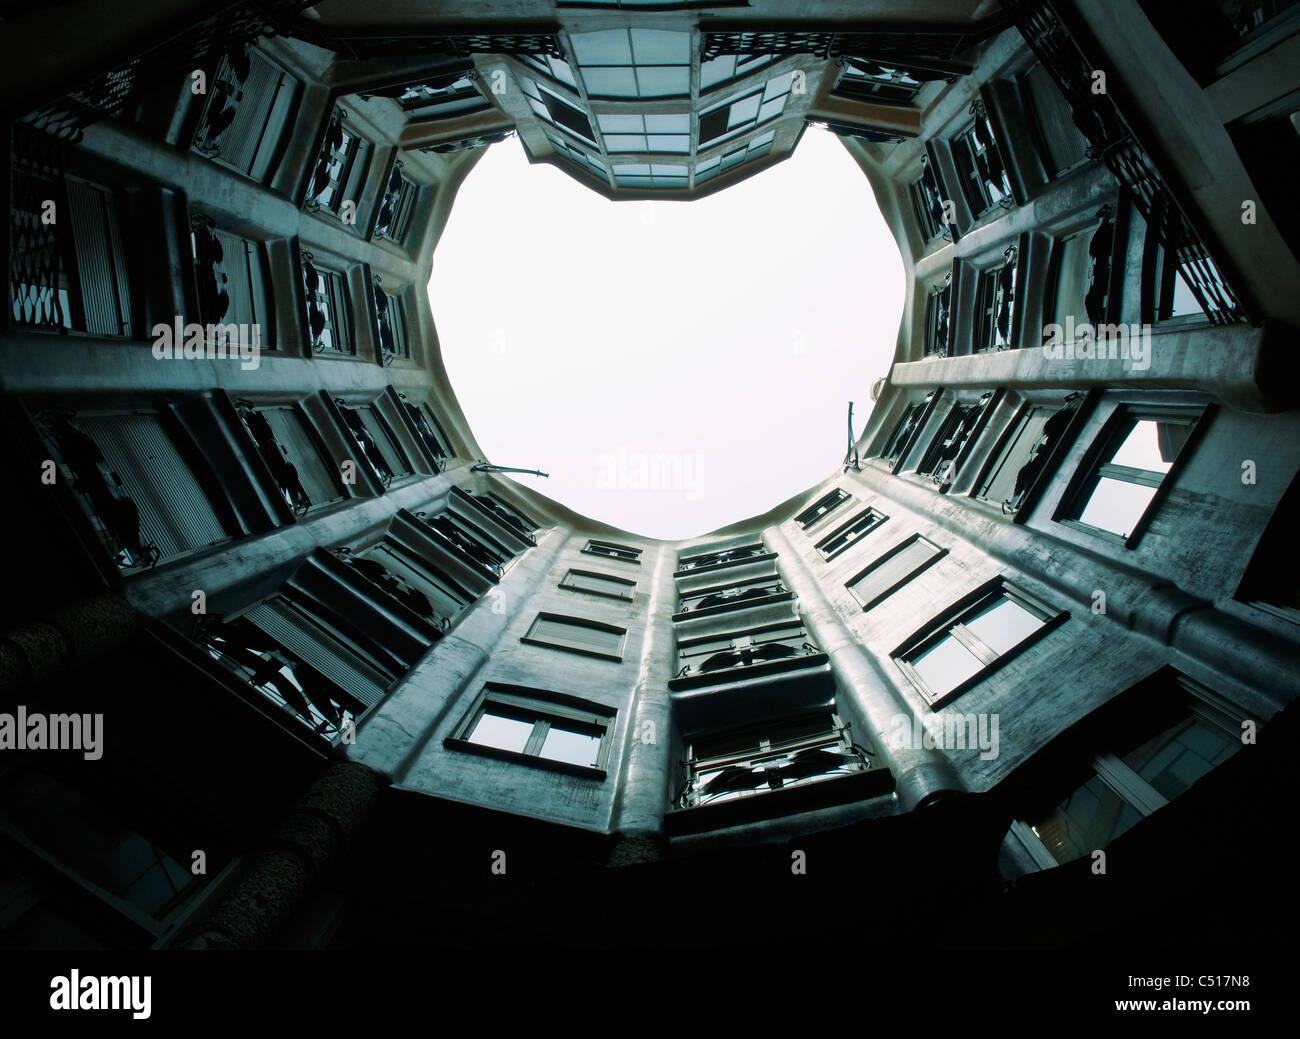 Spain, Barcelona, Casa Mila, atrium viewed from inner courtyard - Stock Image